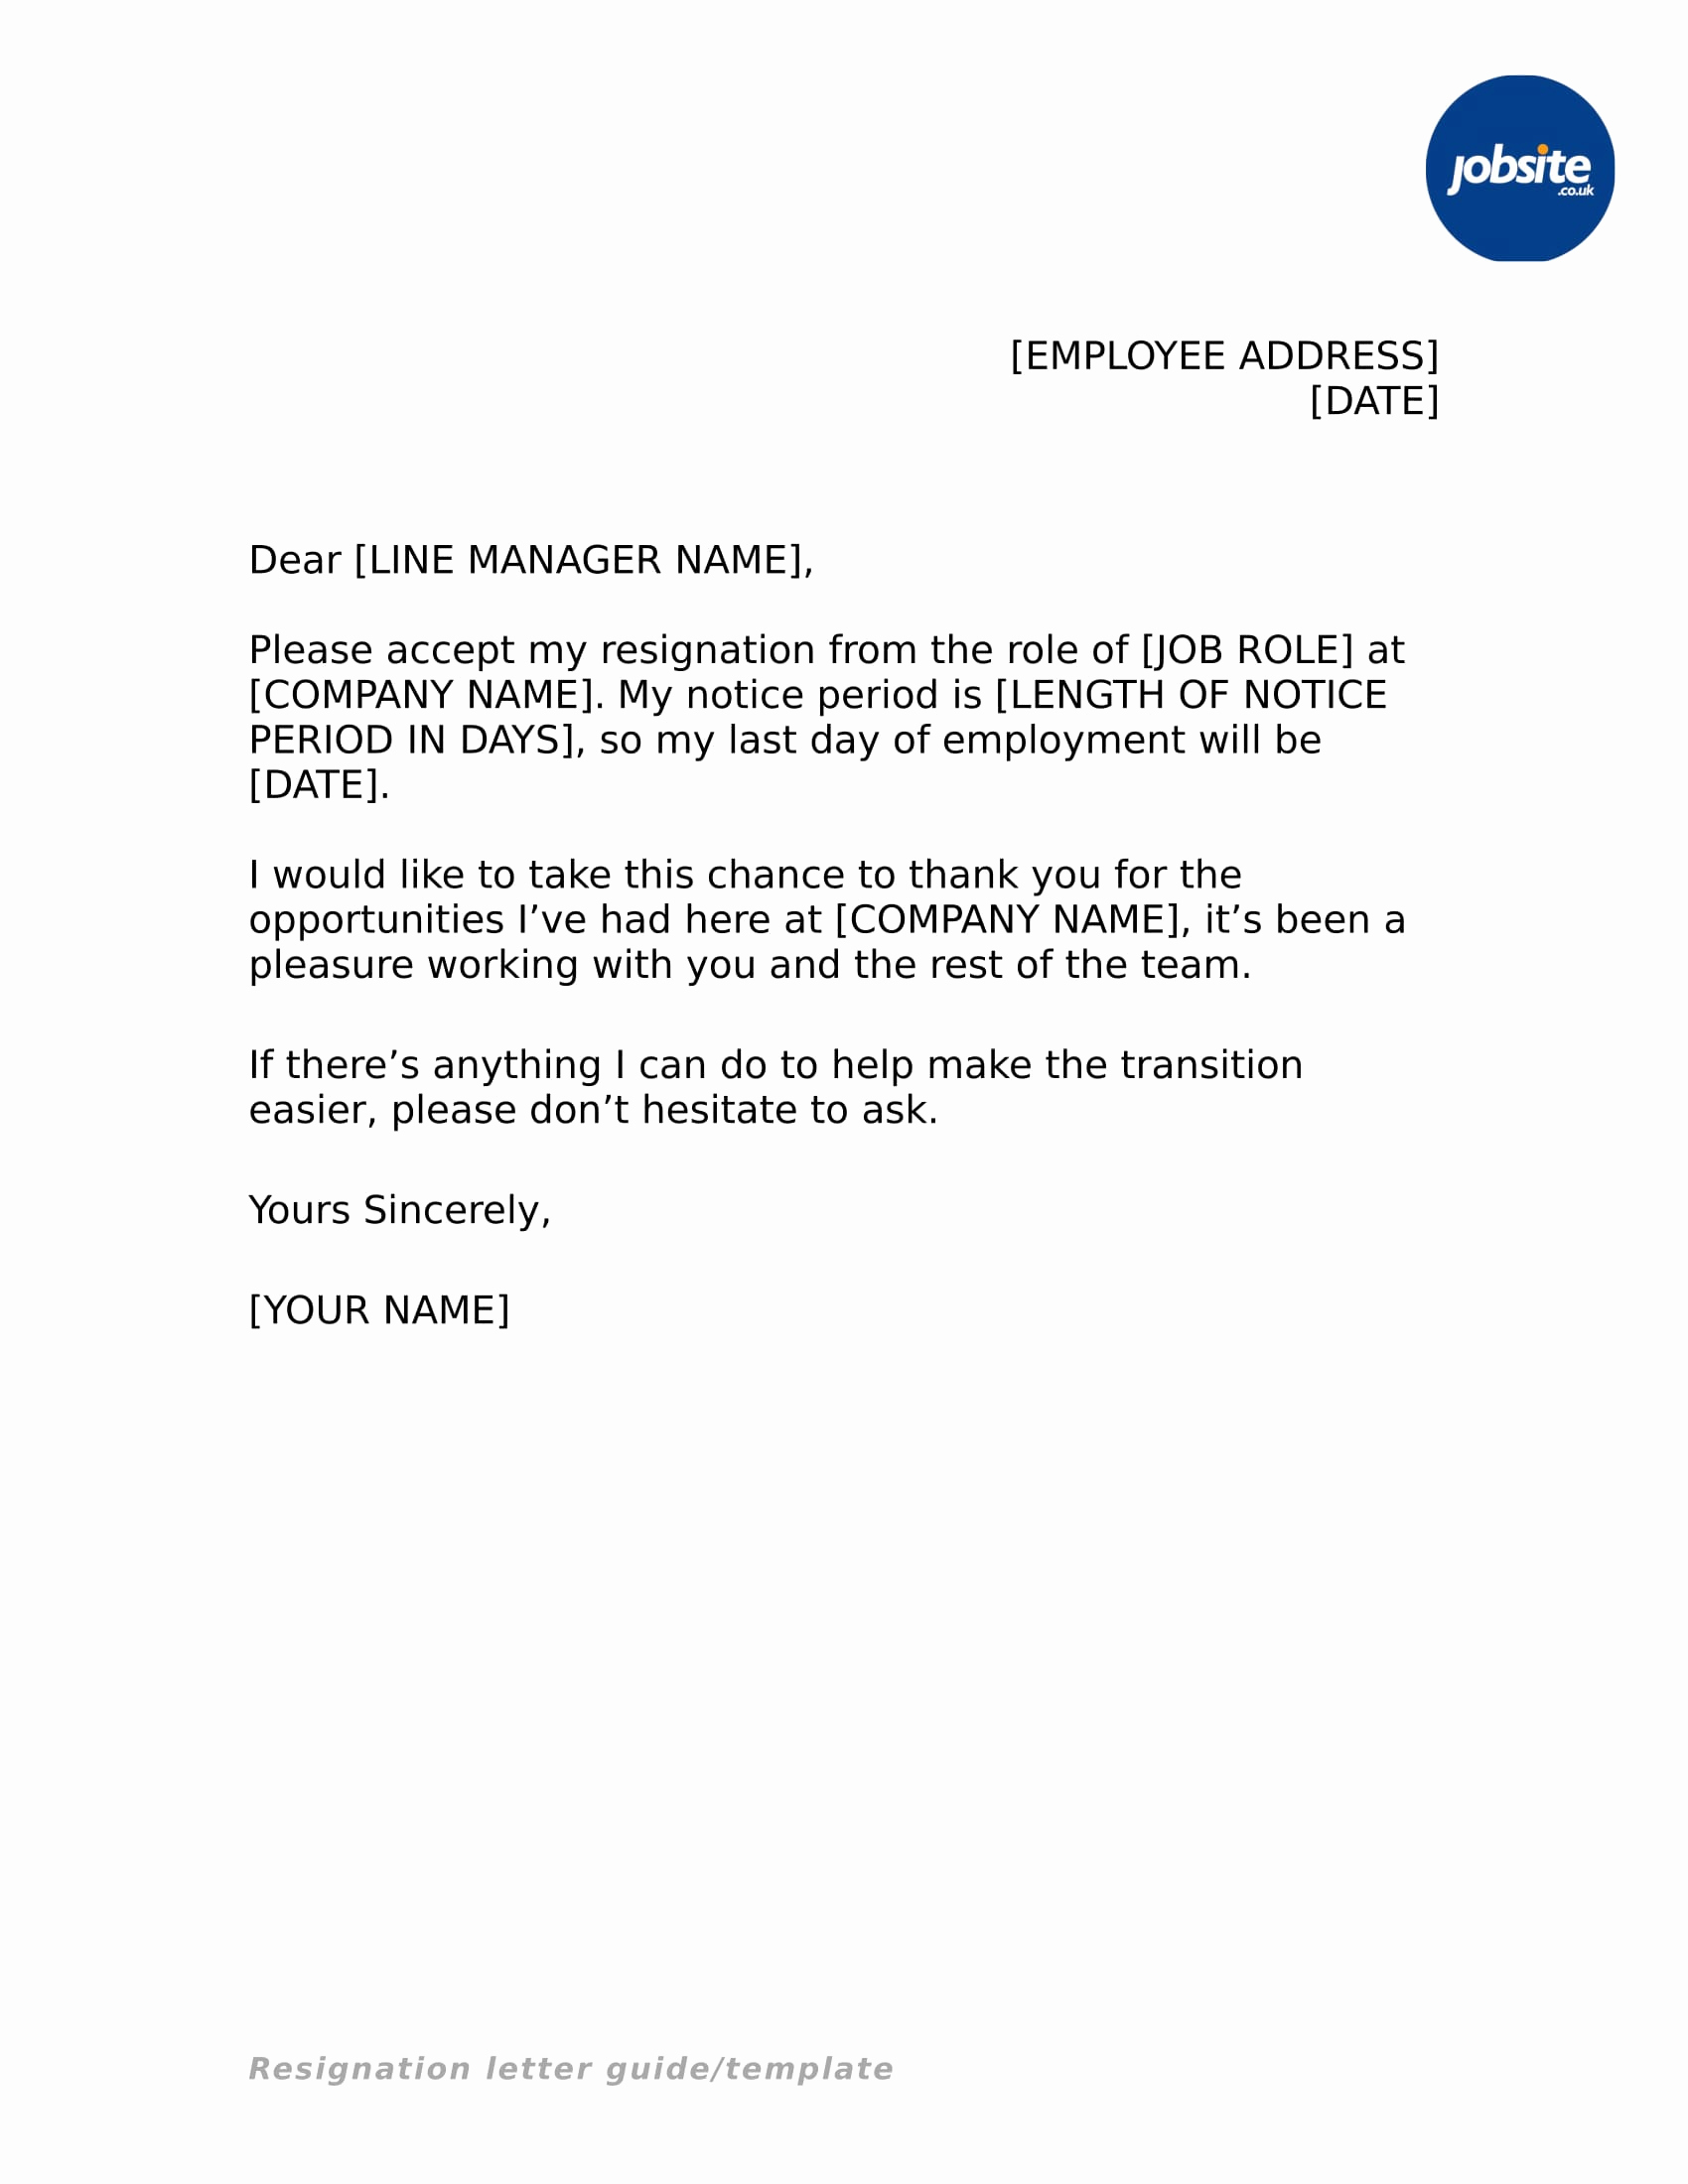 Letter Of Resignation Templates Awesome 25 Simple Resignation Letter Examples Pdf Word